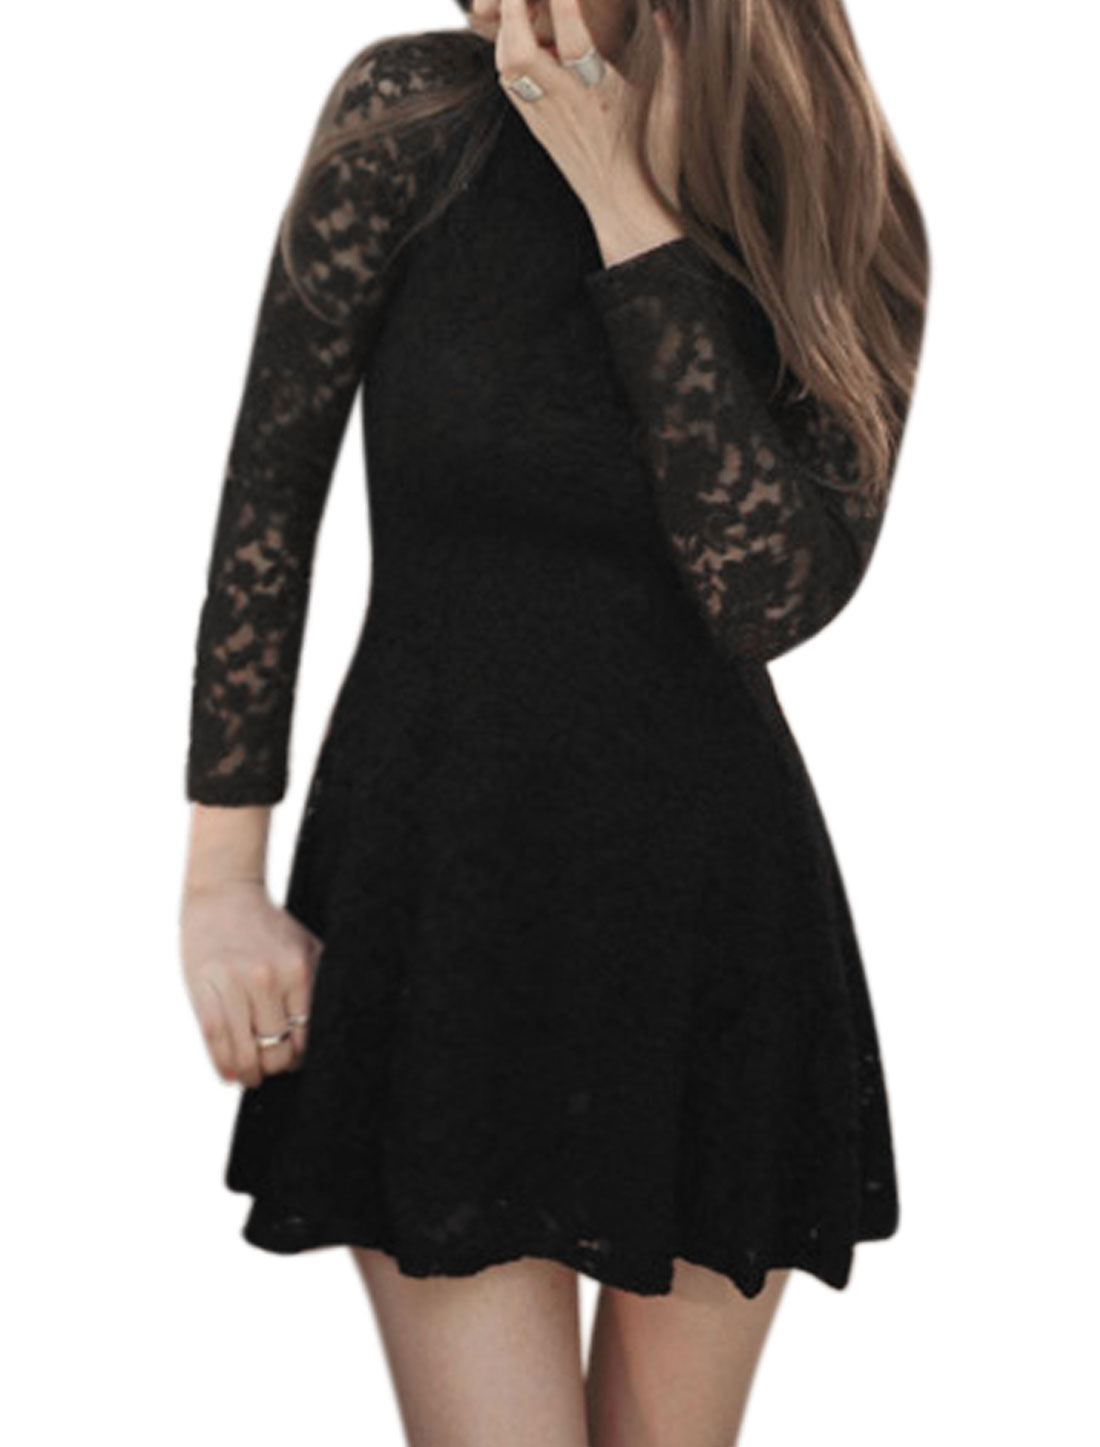 Women Round Neck Long Sleeves Slim Fit Lace A Line Dress Black M